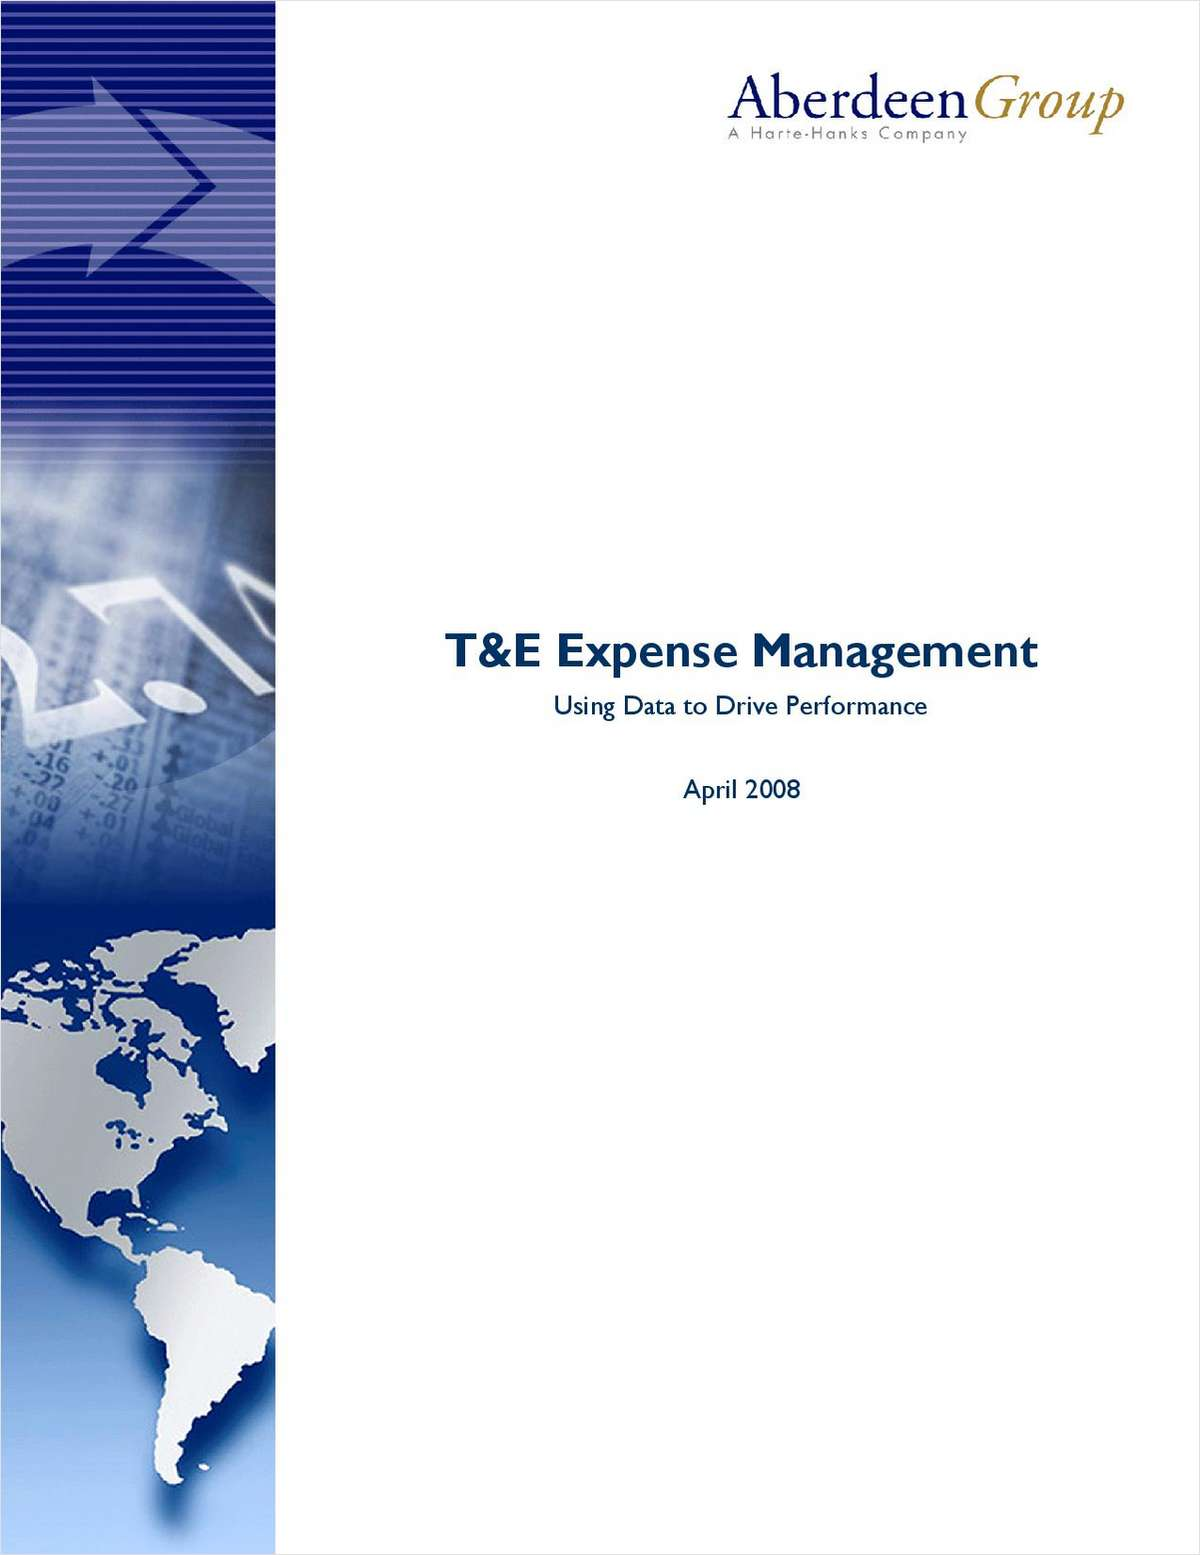 T&E Expense Management: Using Data to Drive Performance